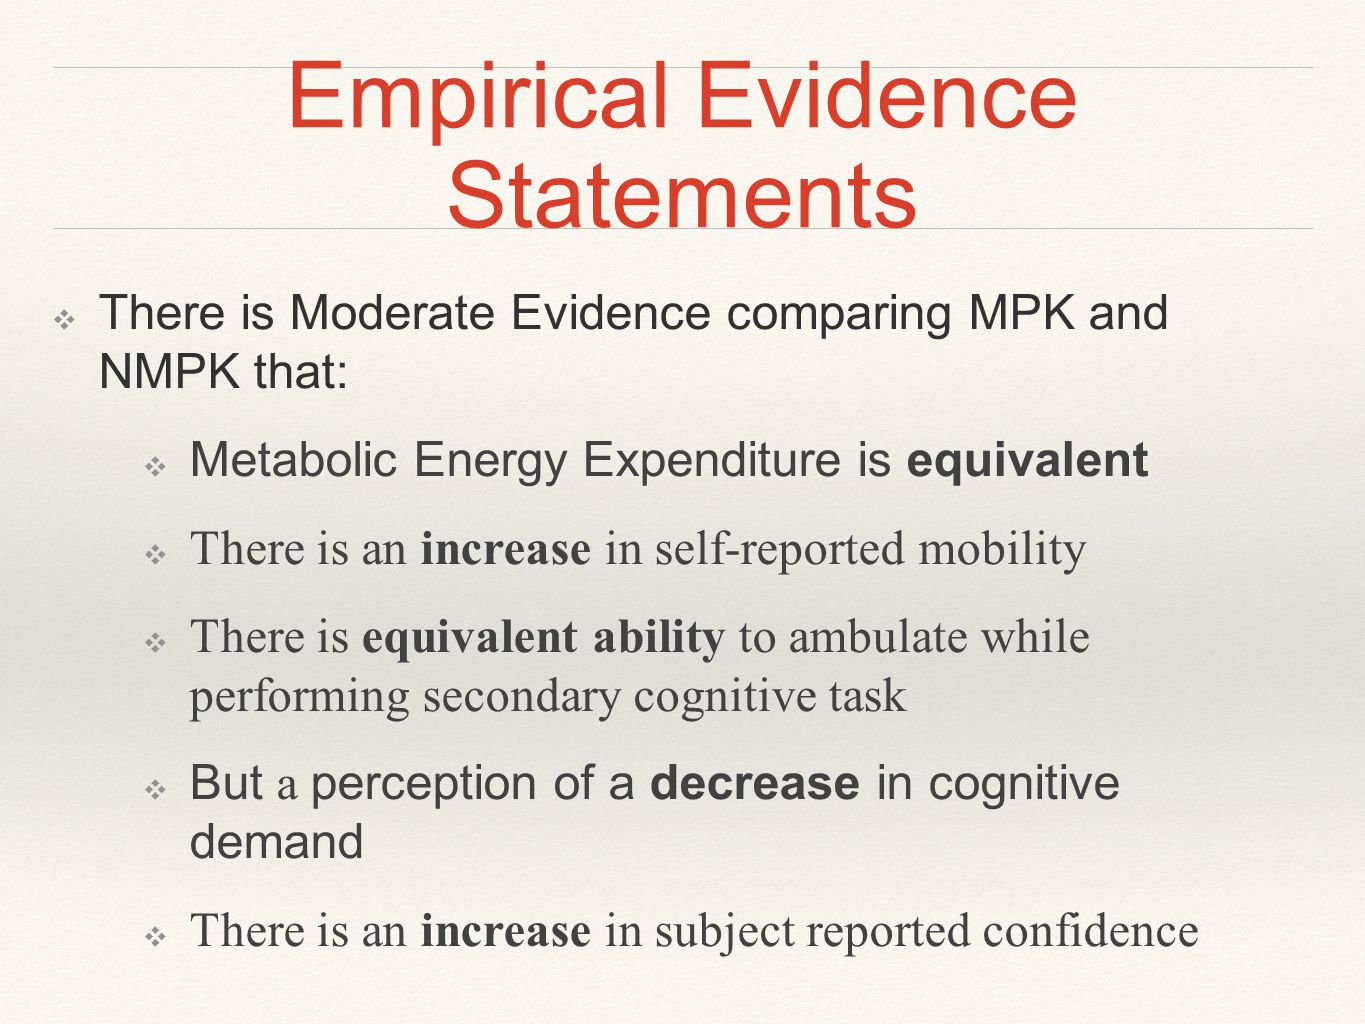 Empirical Evidence Statements ❖ There is Moderate Evidence comparing MPK and NMPK that: ❖ Metabolic Energy Expenditure is equivalent ❖ There is an increase in self-reported mobility ❖ There is equivalent ability to ambulate while performing secondary cognitive task ❖ But a perception of a decrease in cognitive demand ❖ There is an increase in subject reported confidence